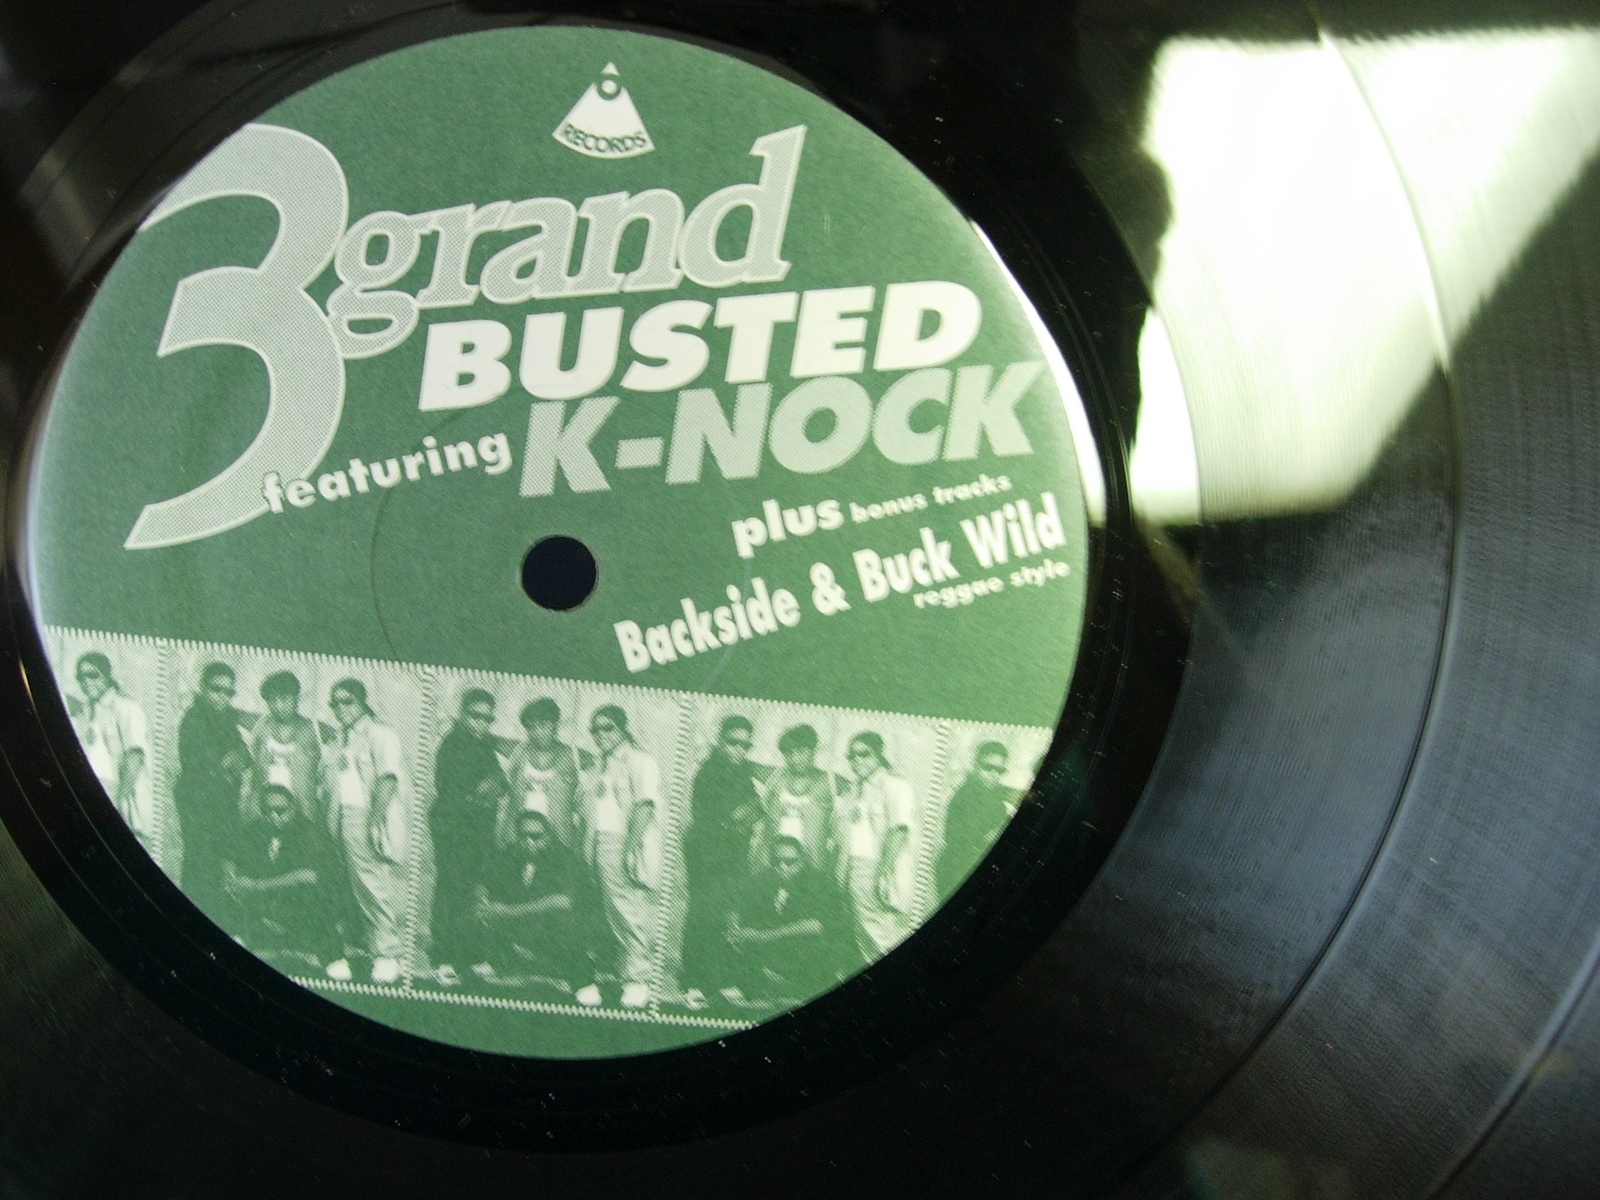 3 Grand featuring K-Nock - Busted - Backside - Buck Wild - 3G Records 12-PO-174